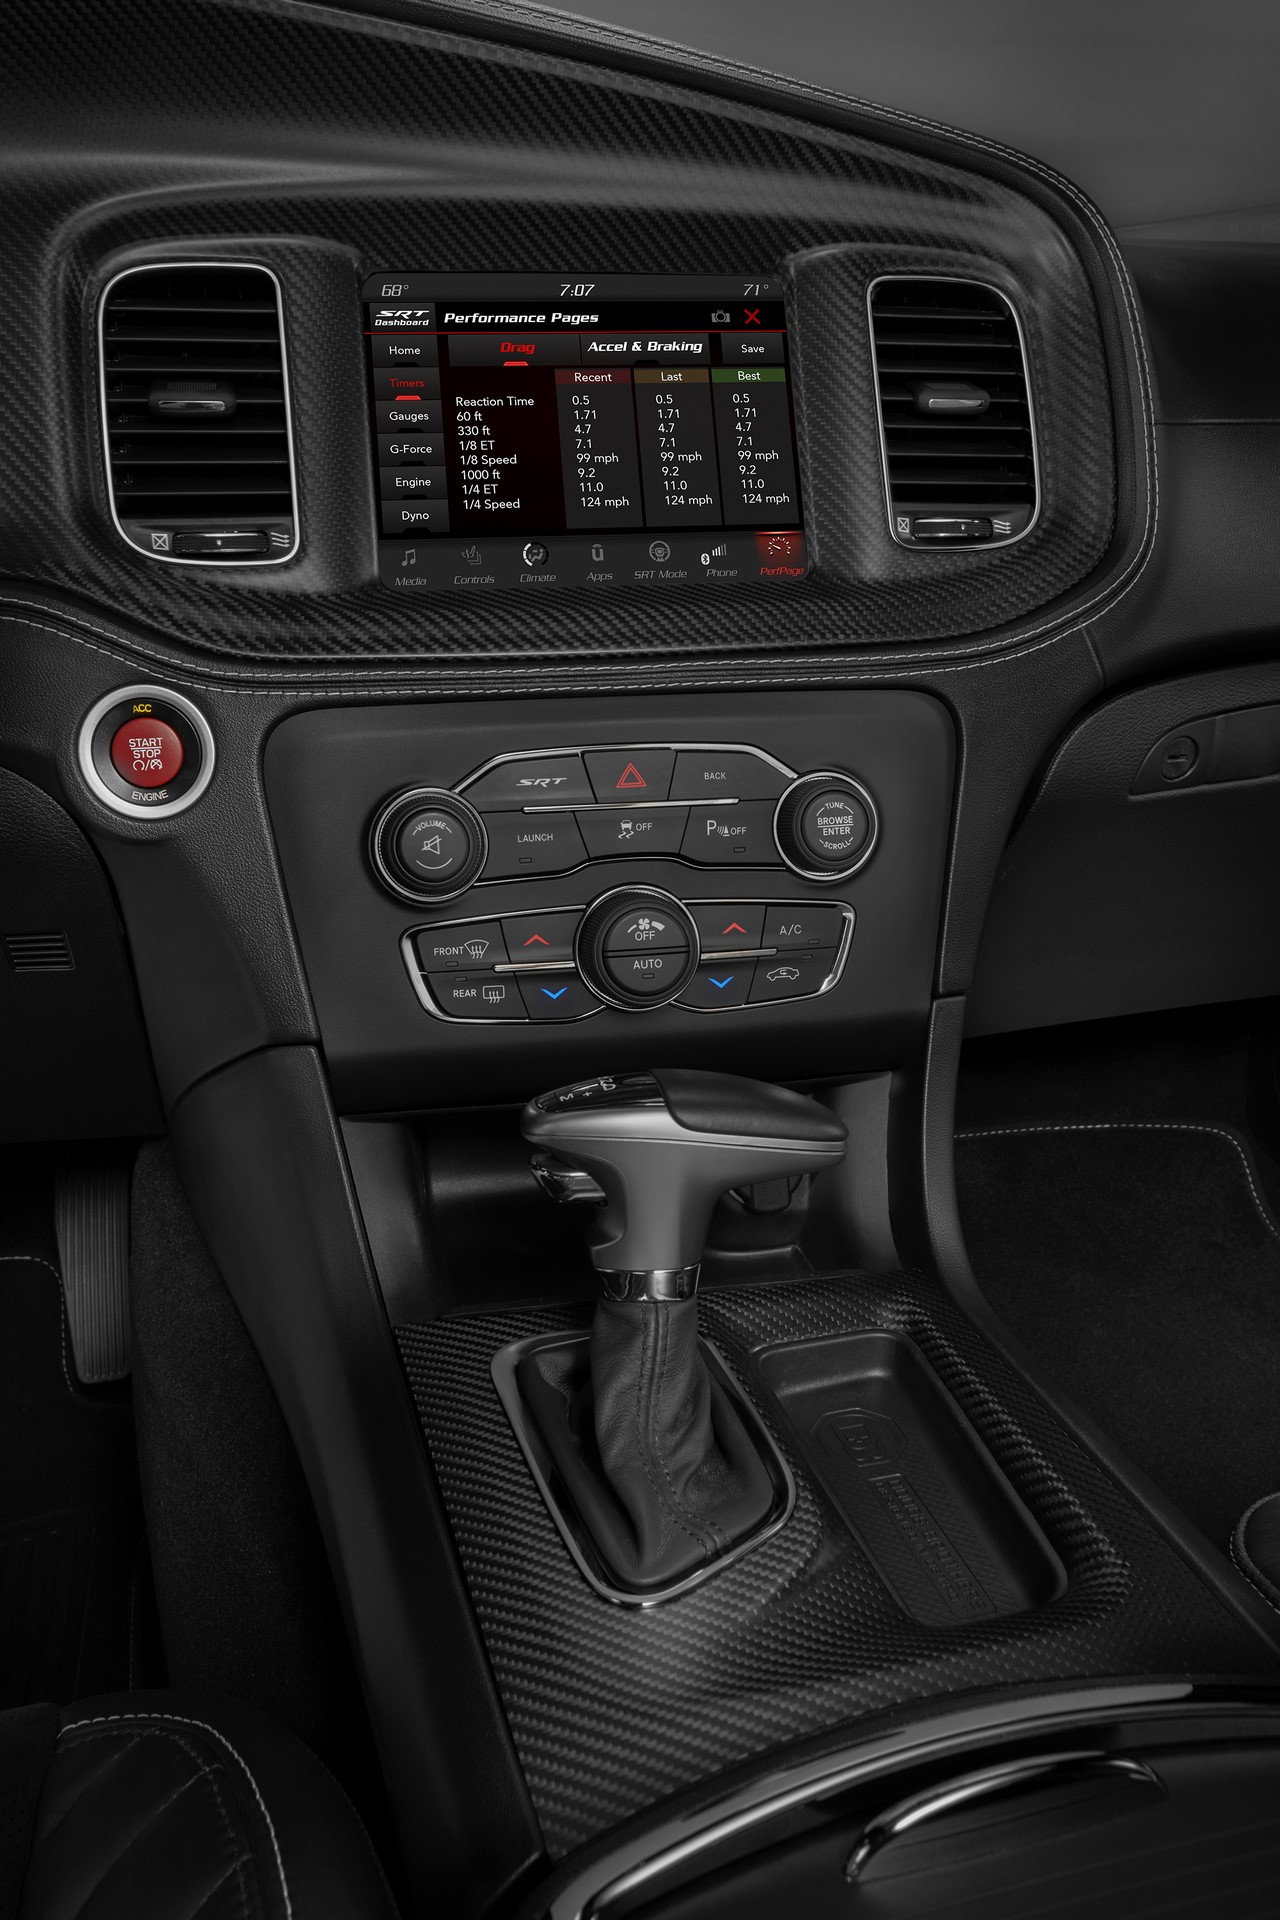 Standard SRT Performance Pages in the 2020 Dodge Charger SRT Hellcat Widebody bring critical vehicle performance data to the driver's fingertips, including real-time engine data such as horsepower, torque, oil pressure and dyno graph. Included in the available Carbon & Suede Package are real carbon fiber instrument panel and console bezels.